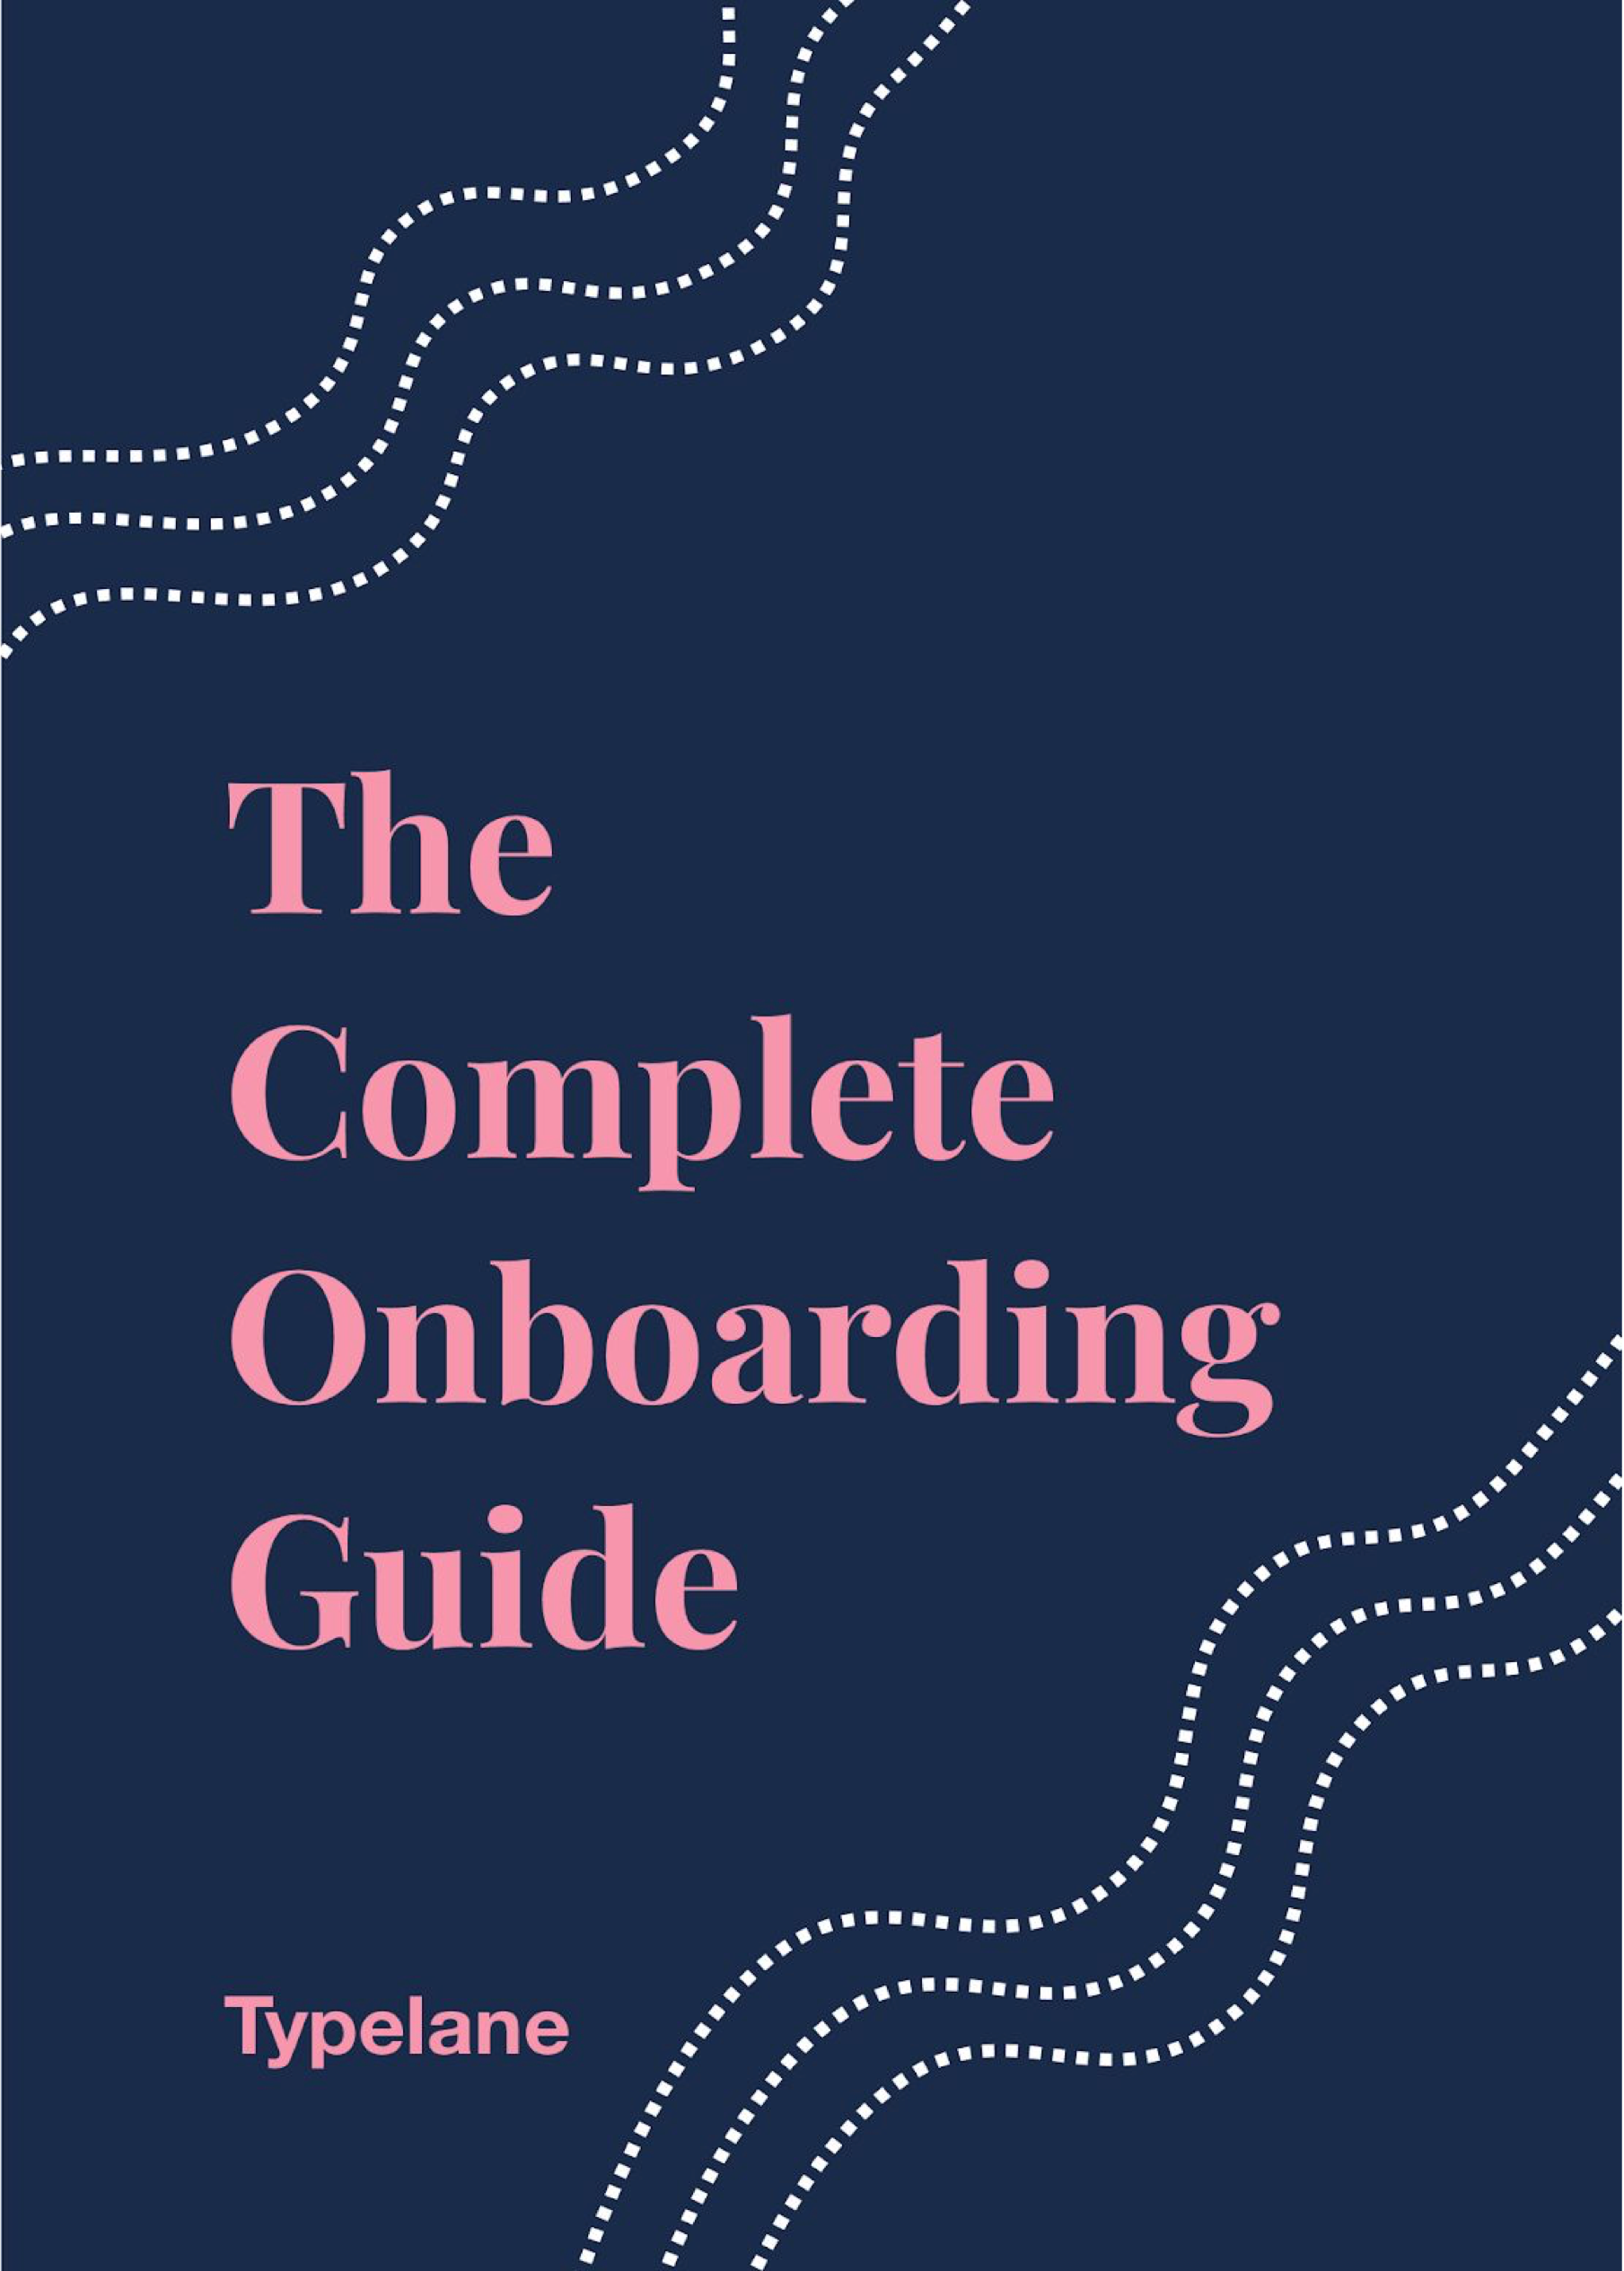 The Complete Employee Onboarding Guide